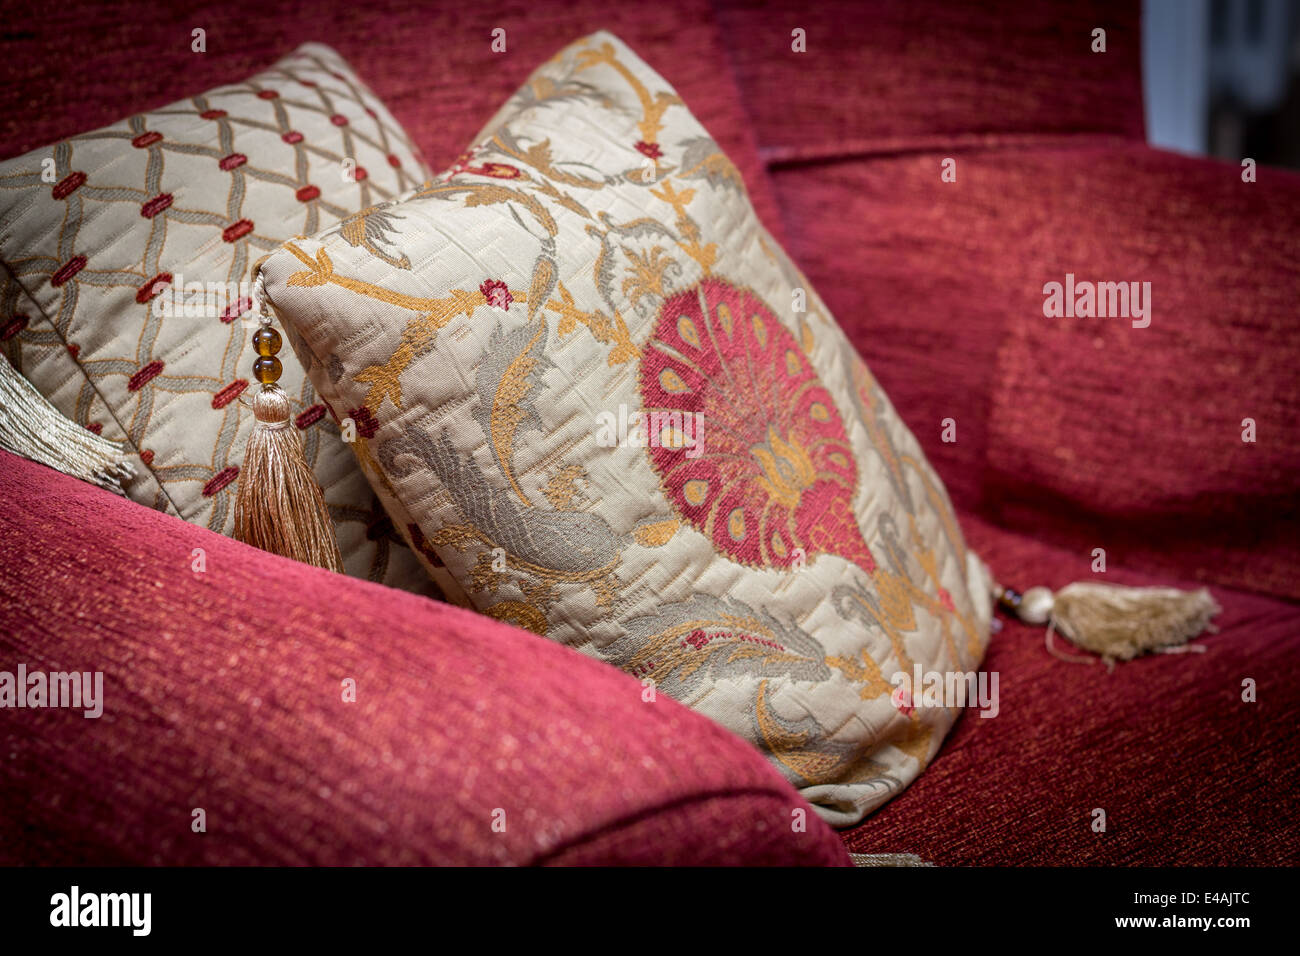 cushions placed on a red armchair - Stock Image